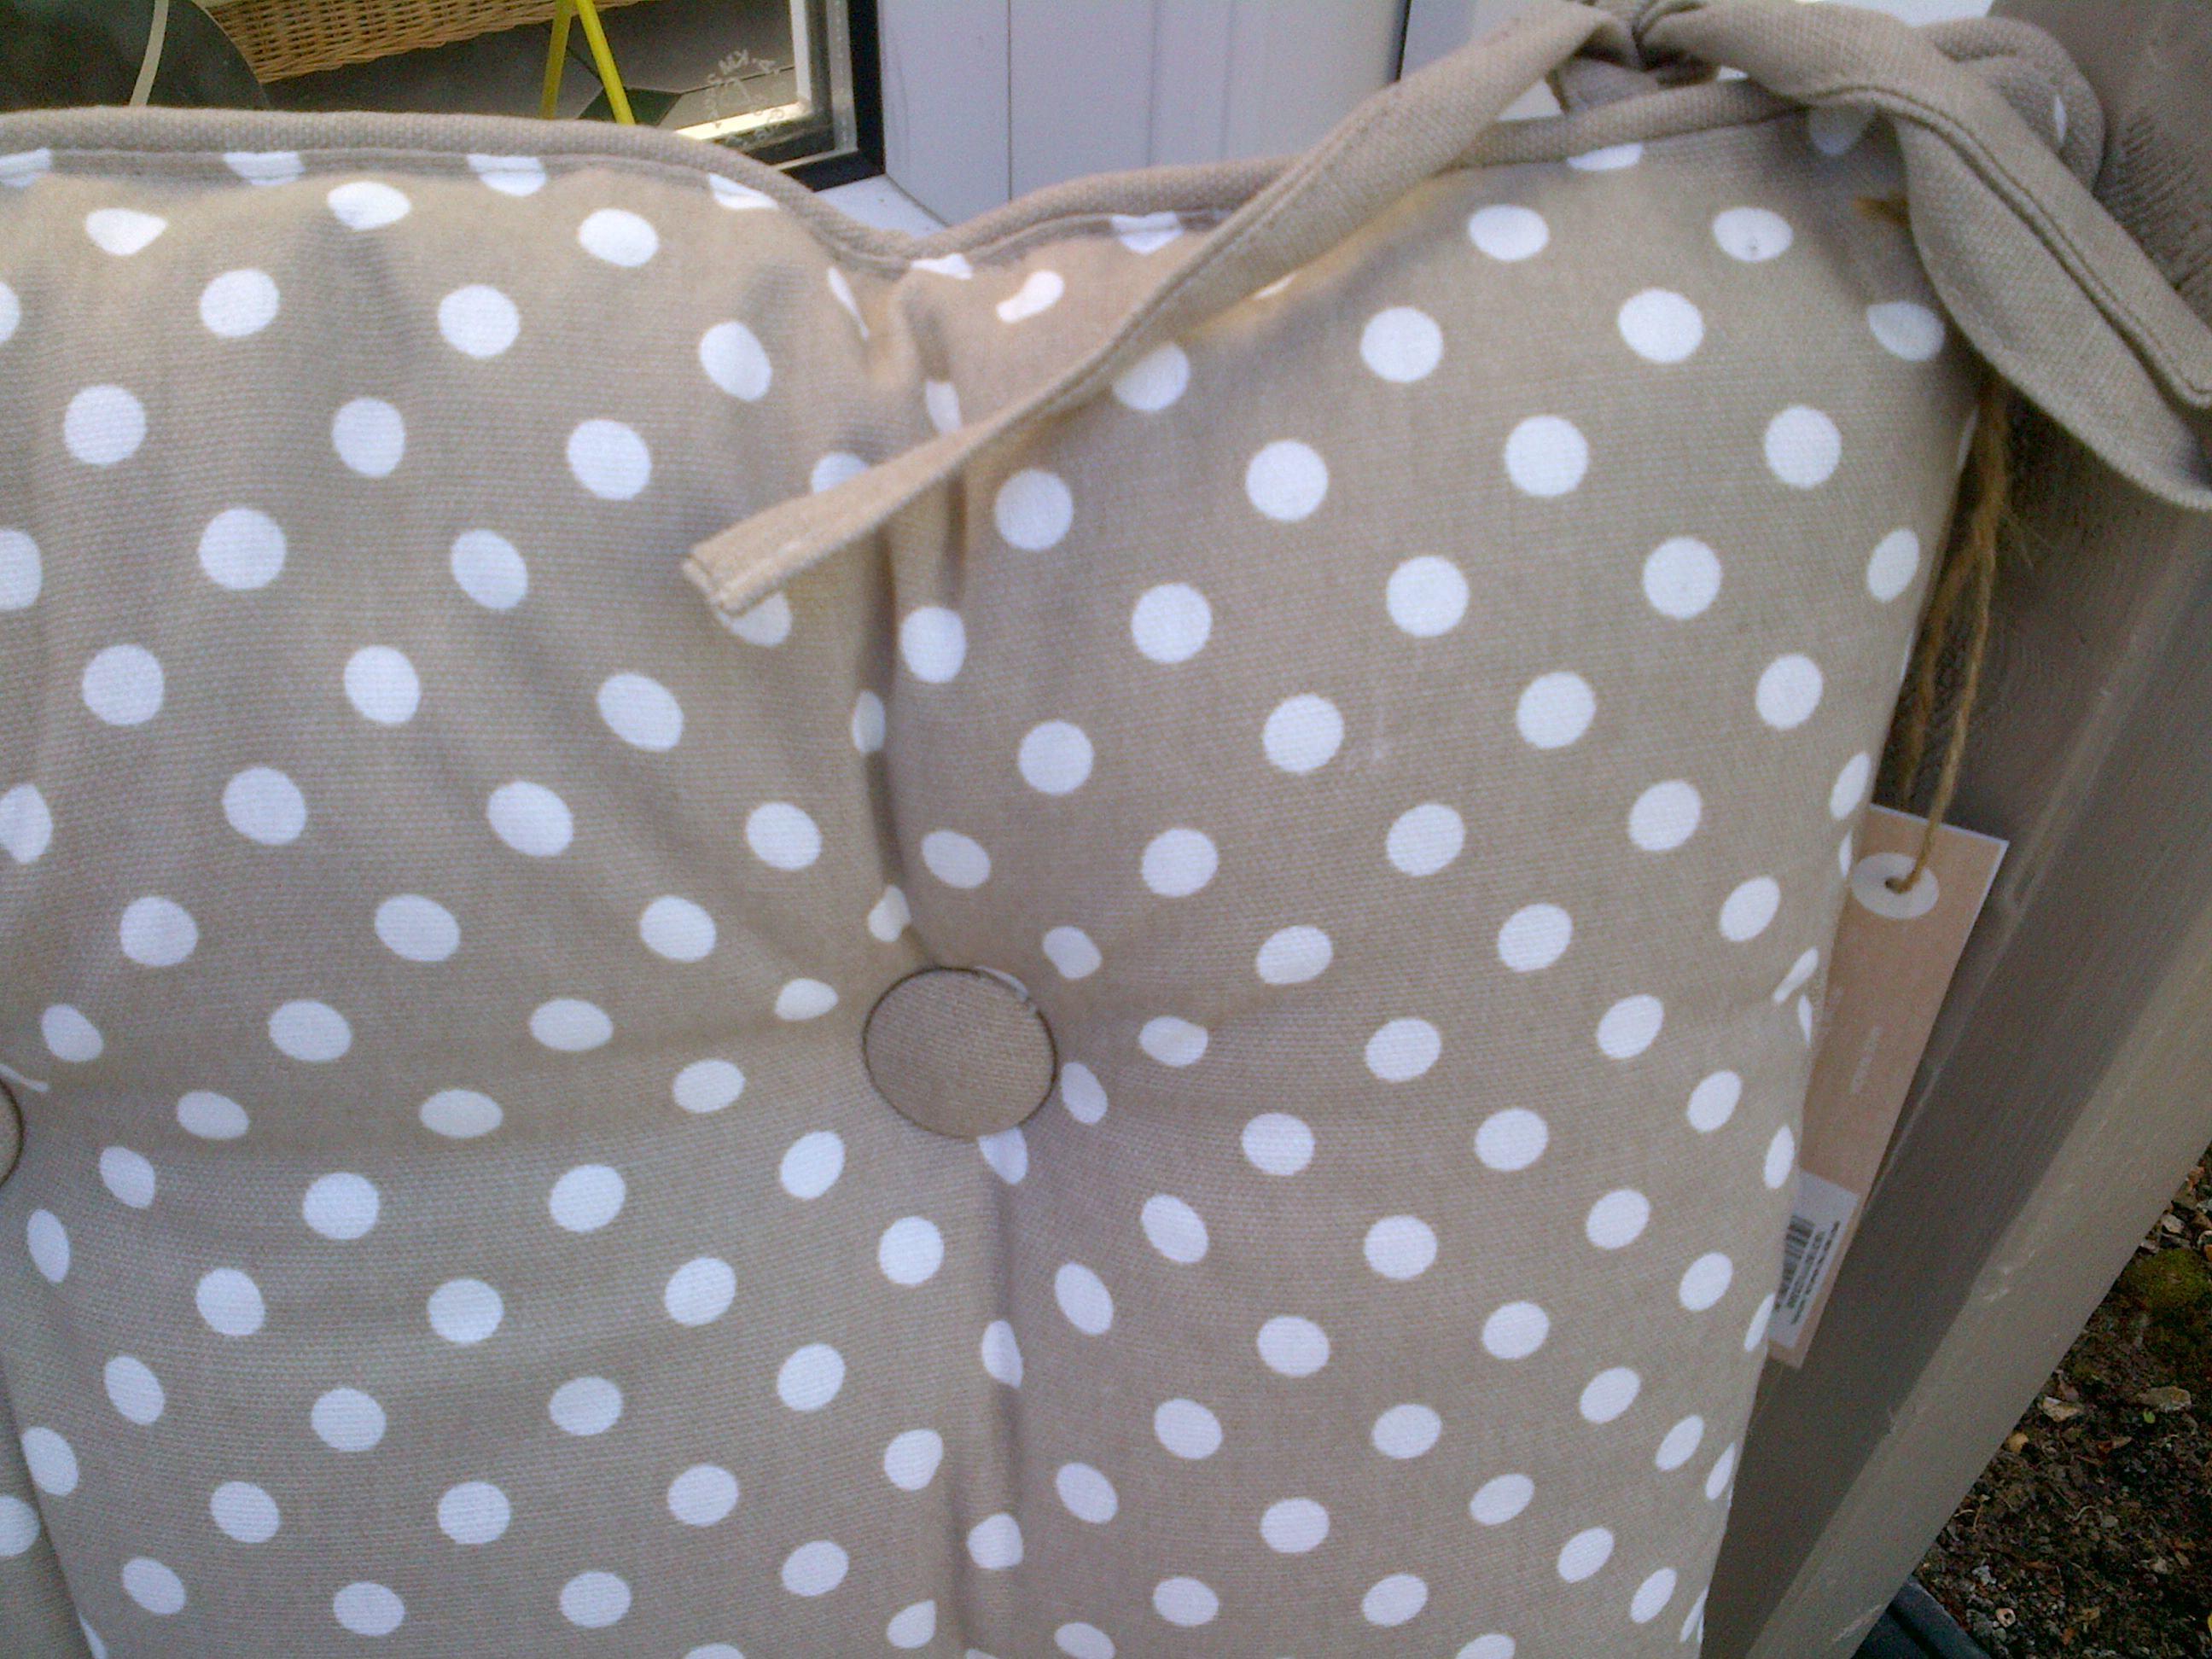 NEW 100% COTTON Seat Pads with Ties / Cushions - 40cm x 40cm